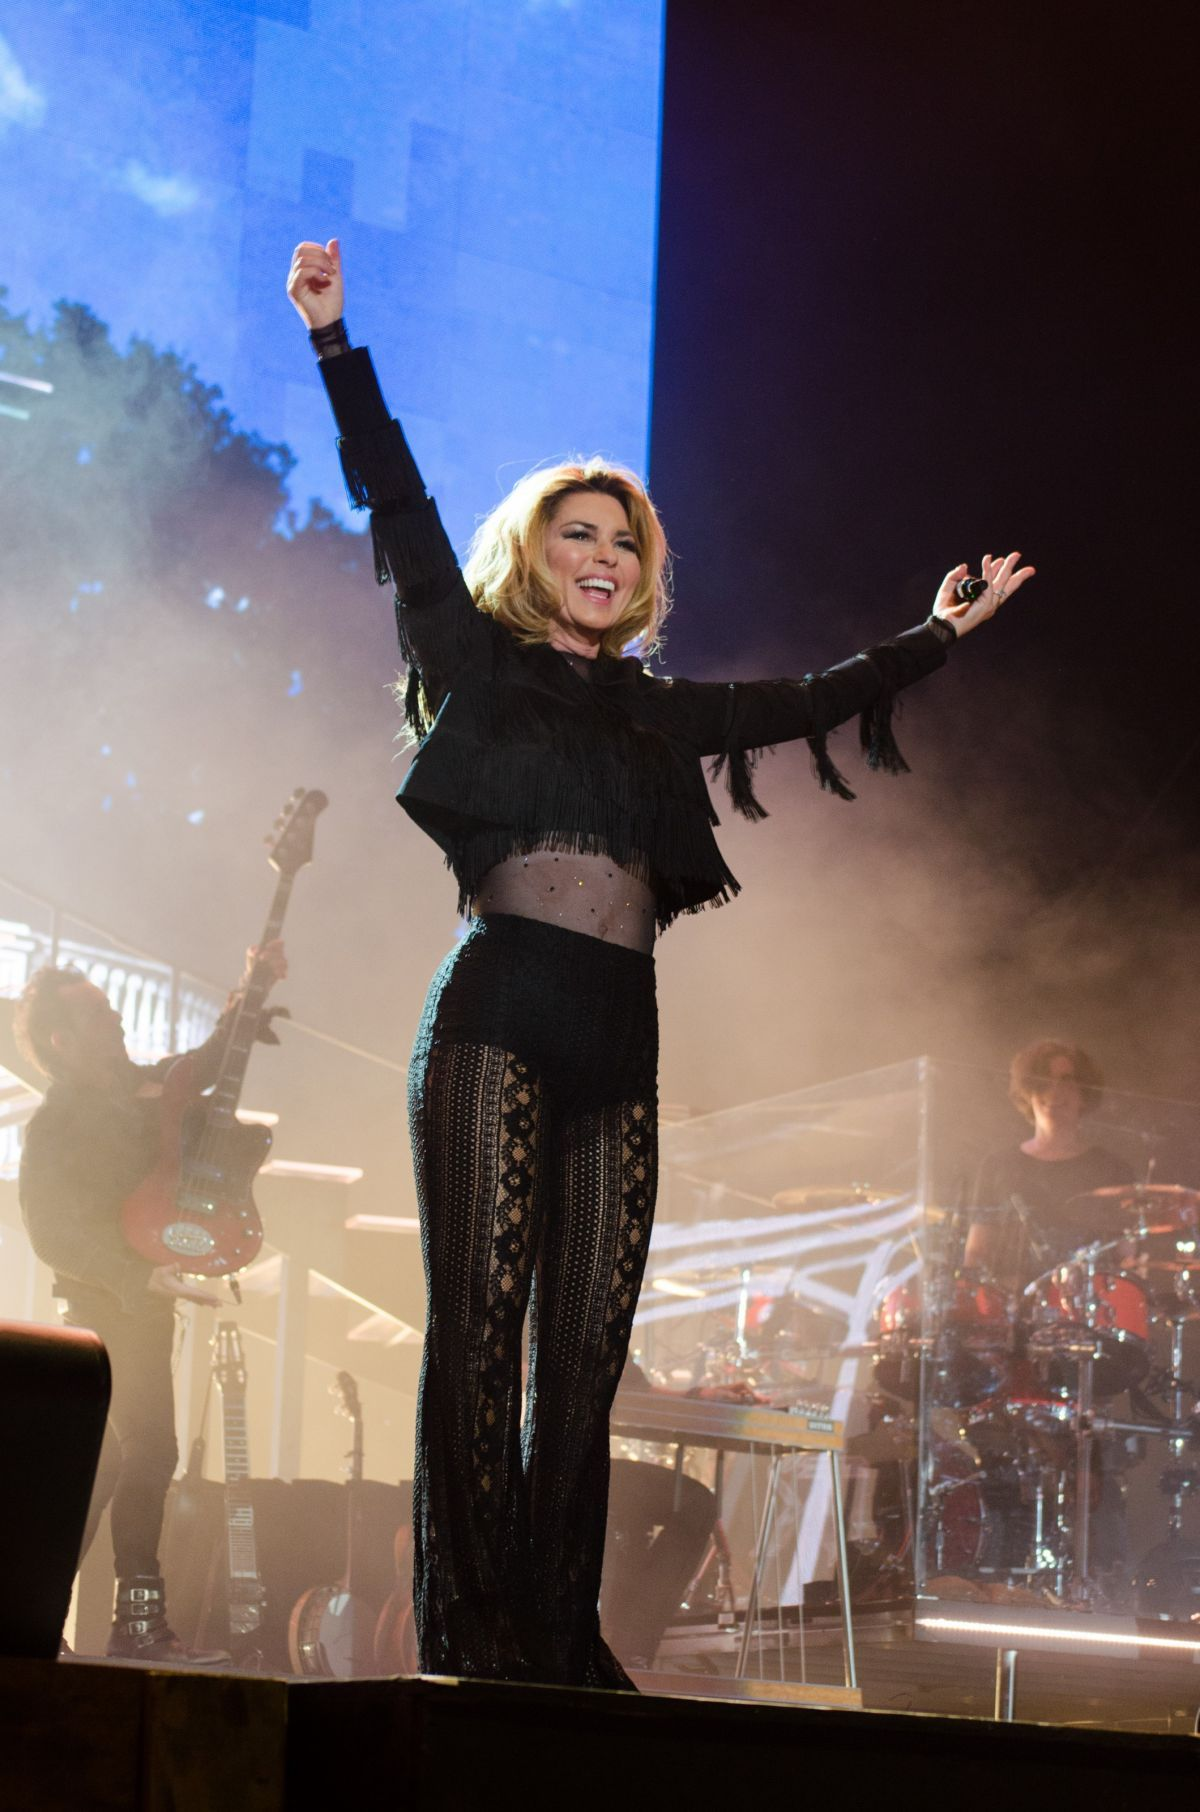 shania-twain-at-stagecoach-music-festival-2017-in-indio-_8.jpg